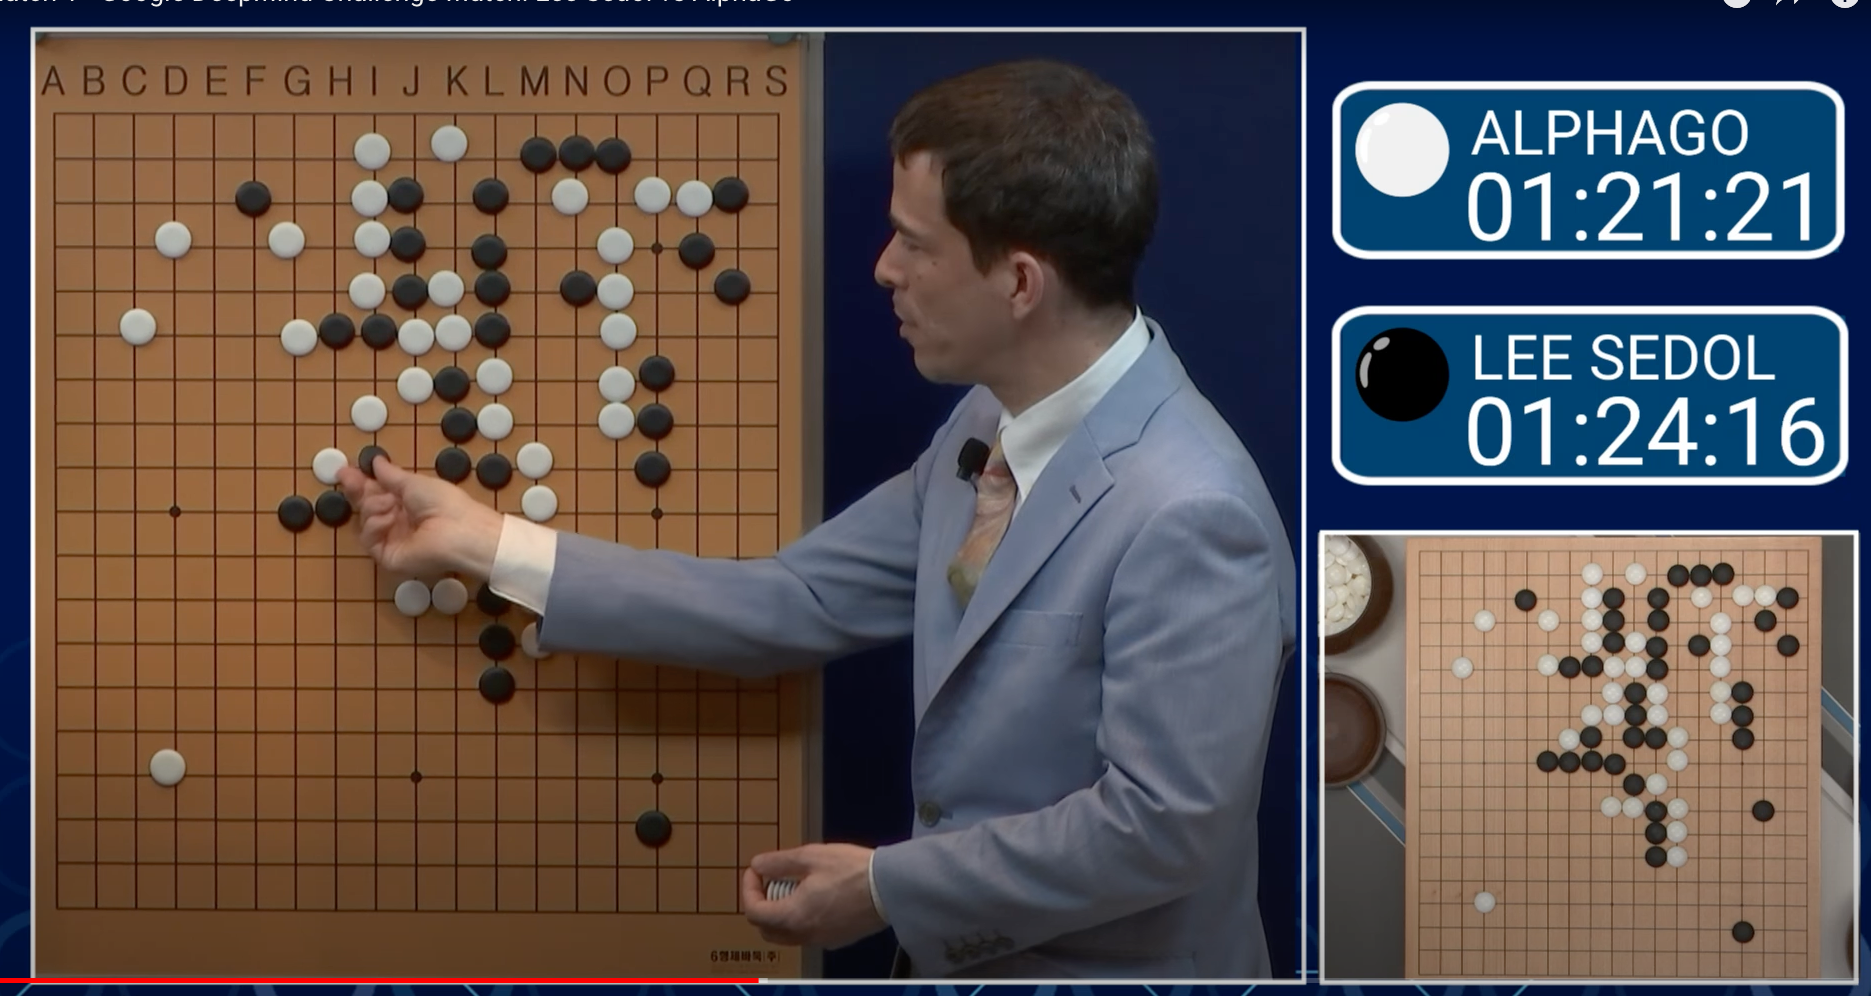 Using machine learning, AlphaGo taught itself the game of Go, and in 2016 beat 18-time world champion Lee Sedol. Pictured here is Go professional Michael Redmond providing a play-by-play commentary on the AlphaGo/Sedol match. (DEEPMIND)